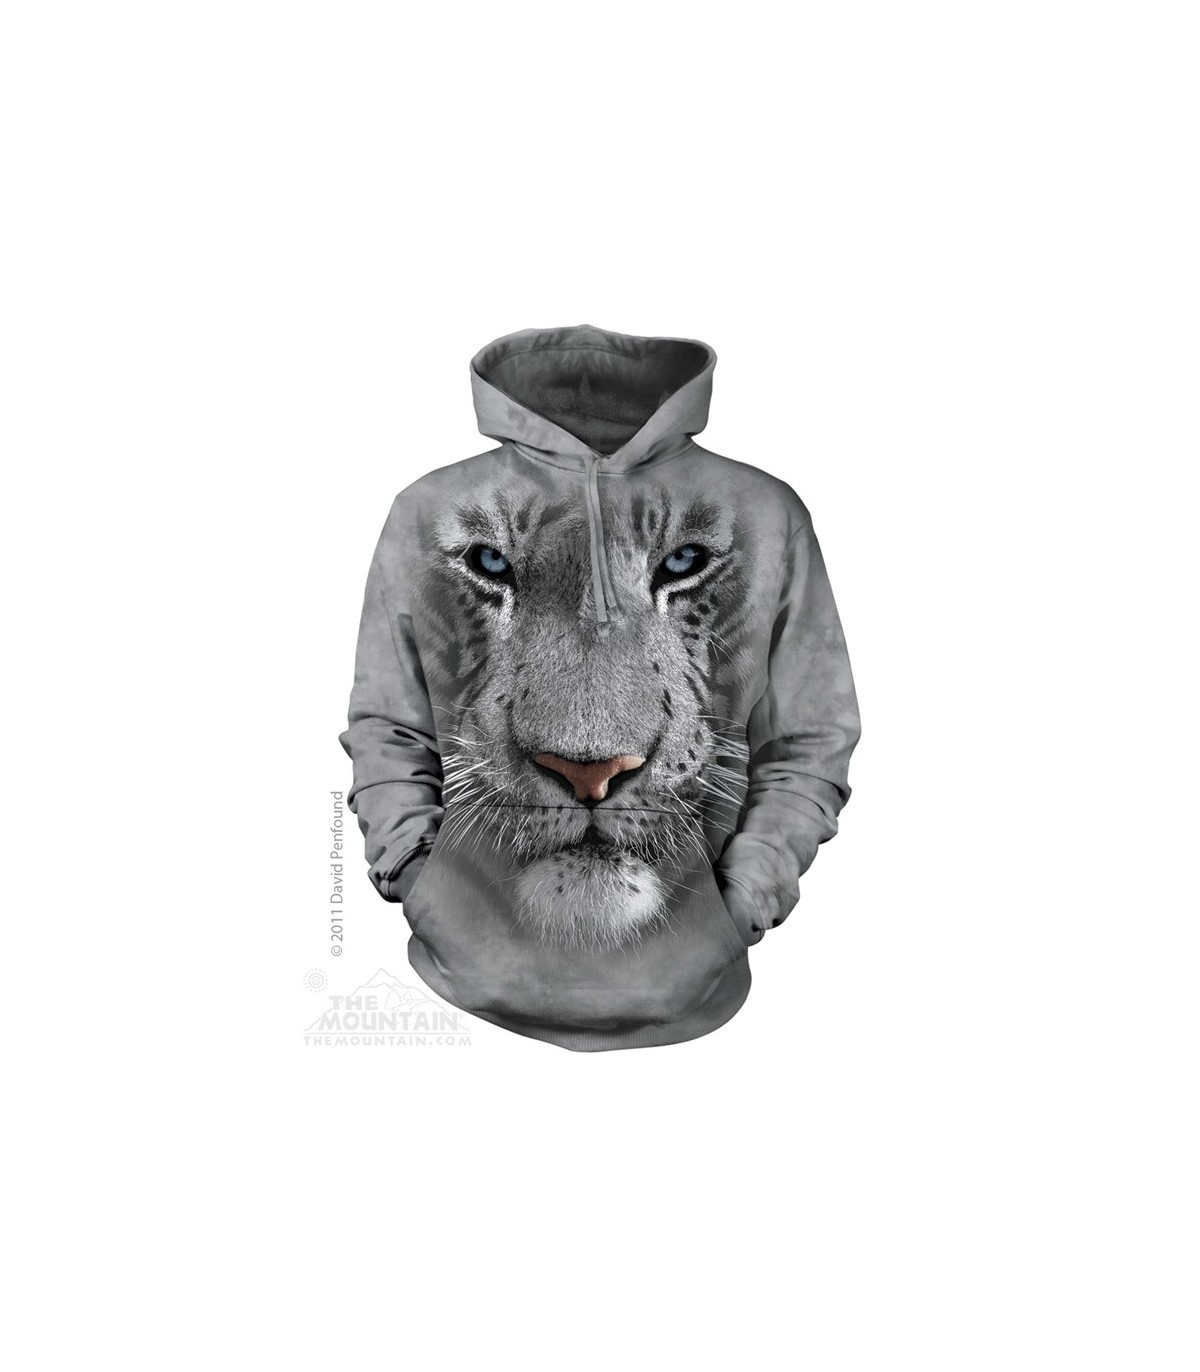 White Tiger Face Adult Big Cat Hoodie the Mountain